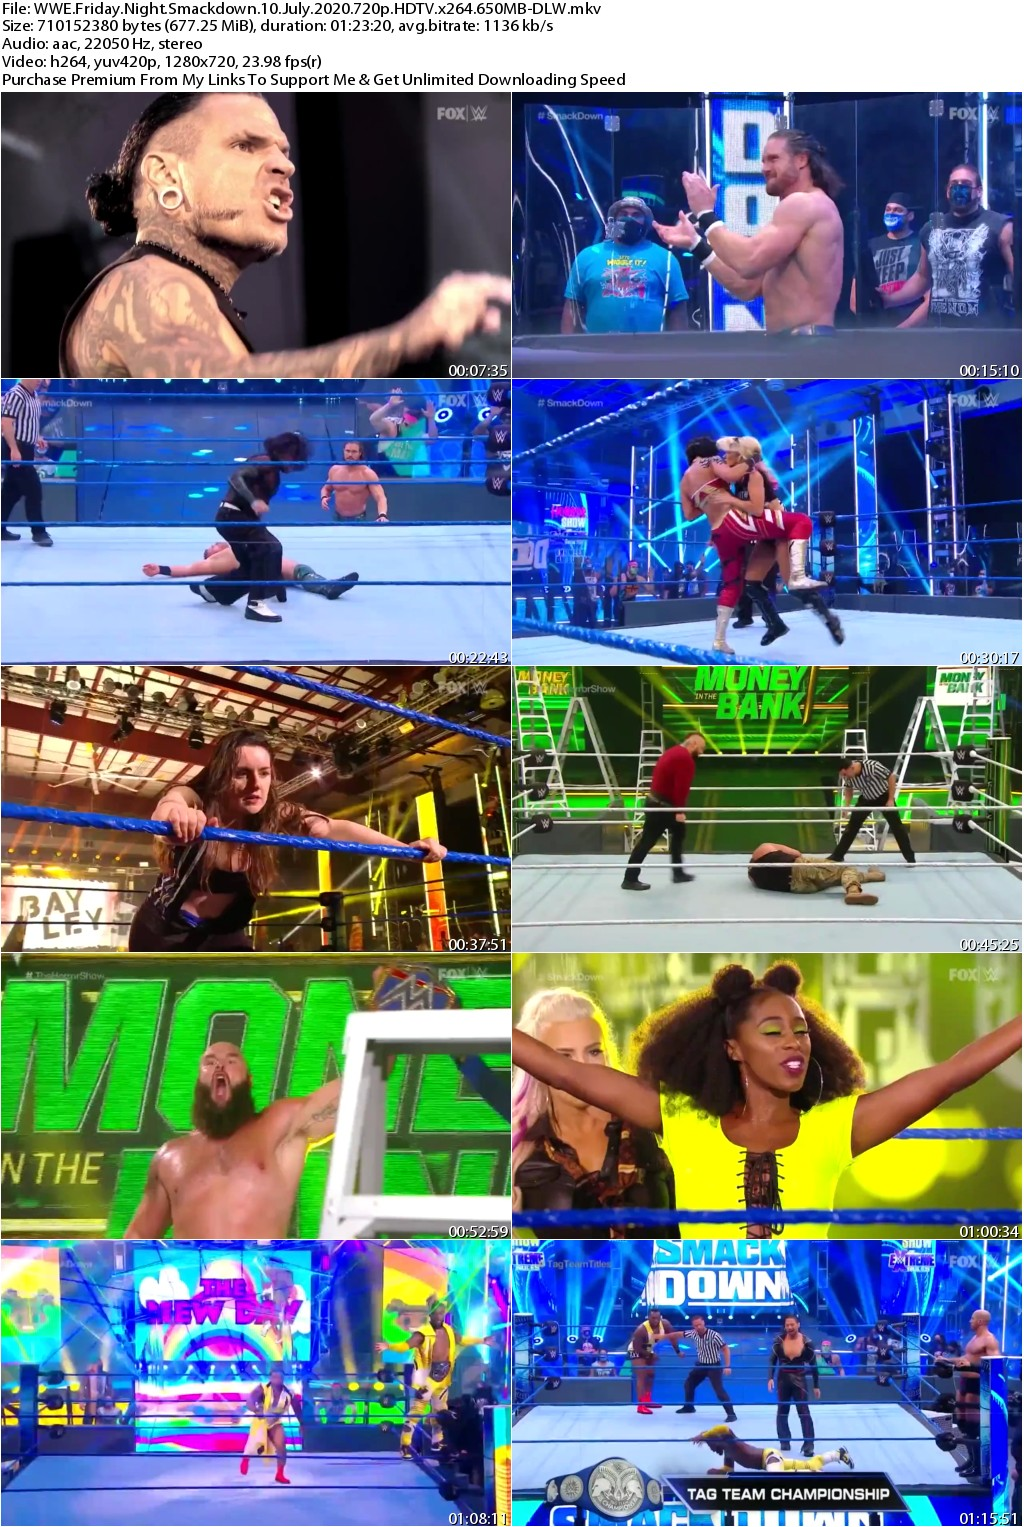 WWE Friday Night Smackdown 10 July 2020 720p HDTV x264 650MB-DLW